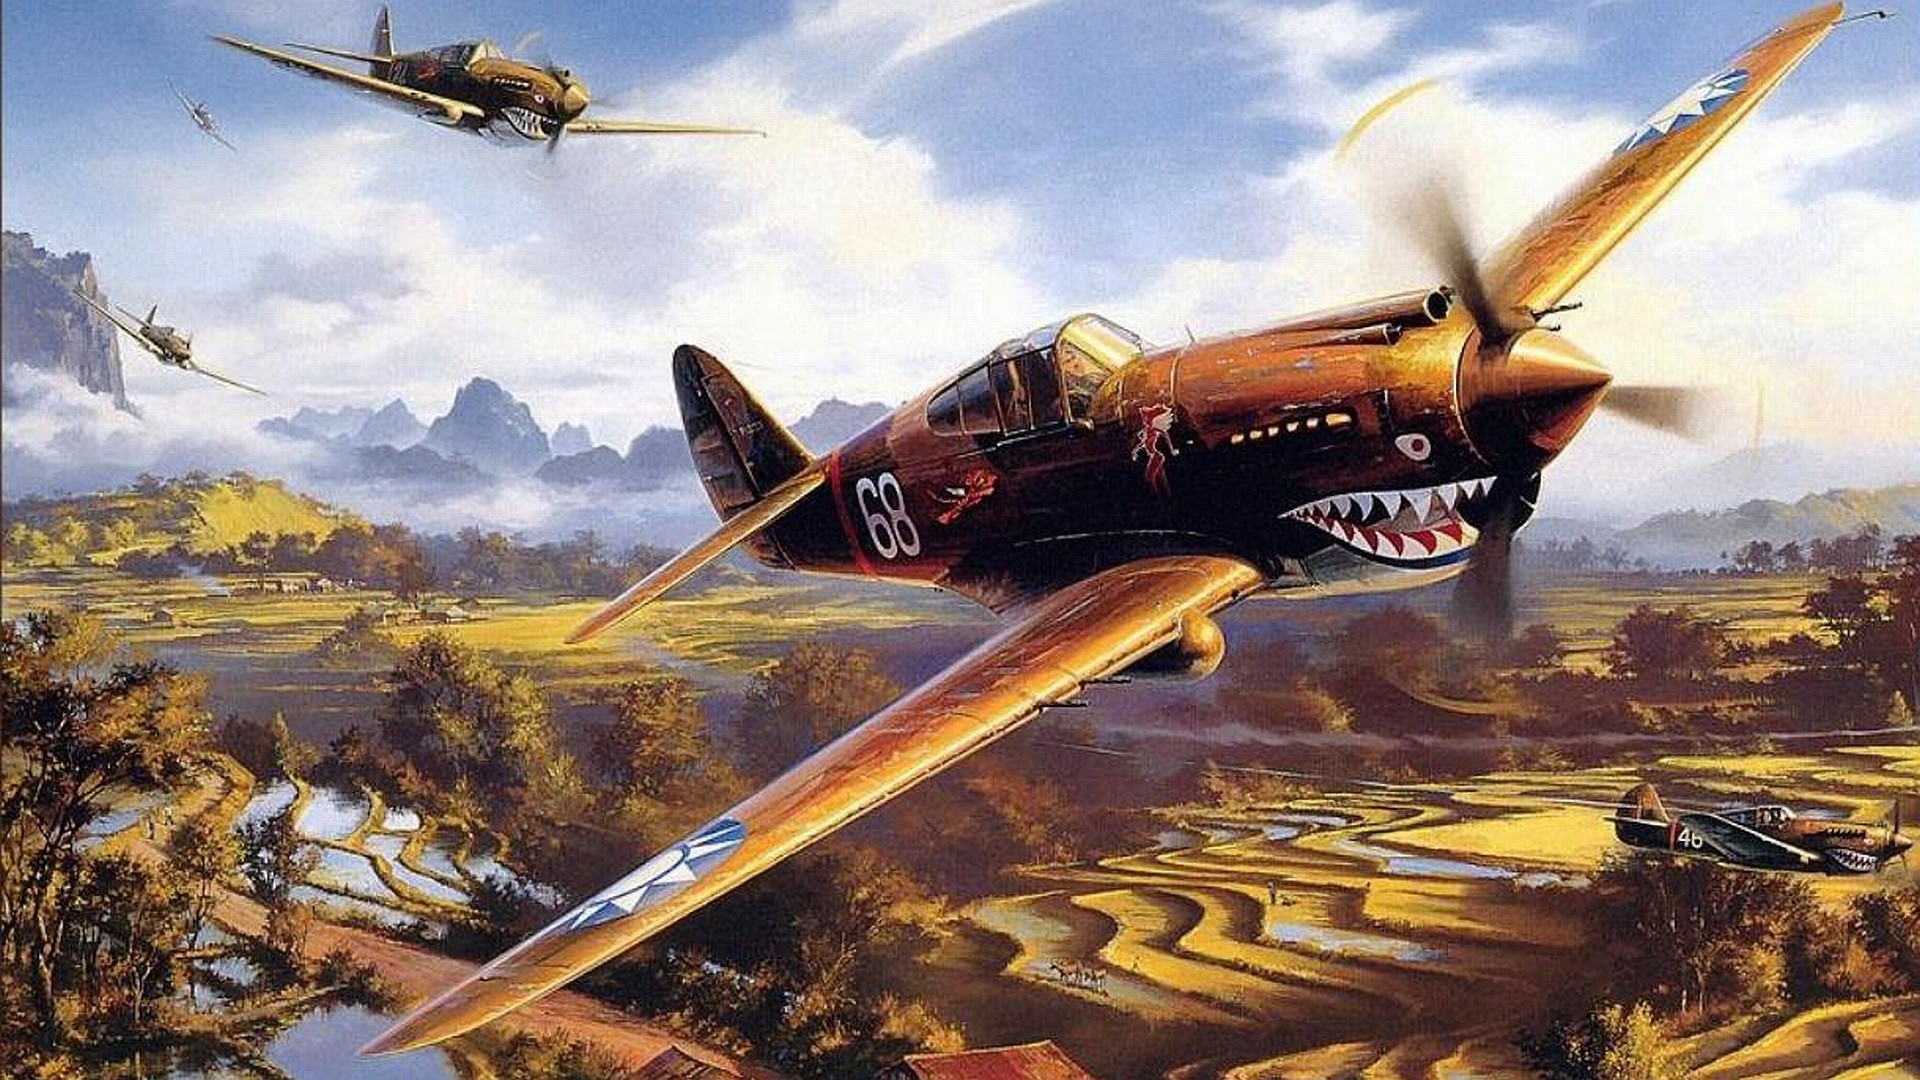 Ww2 airplane wallpaper 69 images - World war 2 desktop wallpaper ...